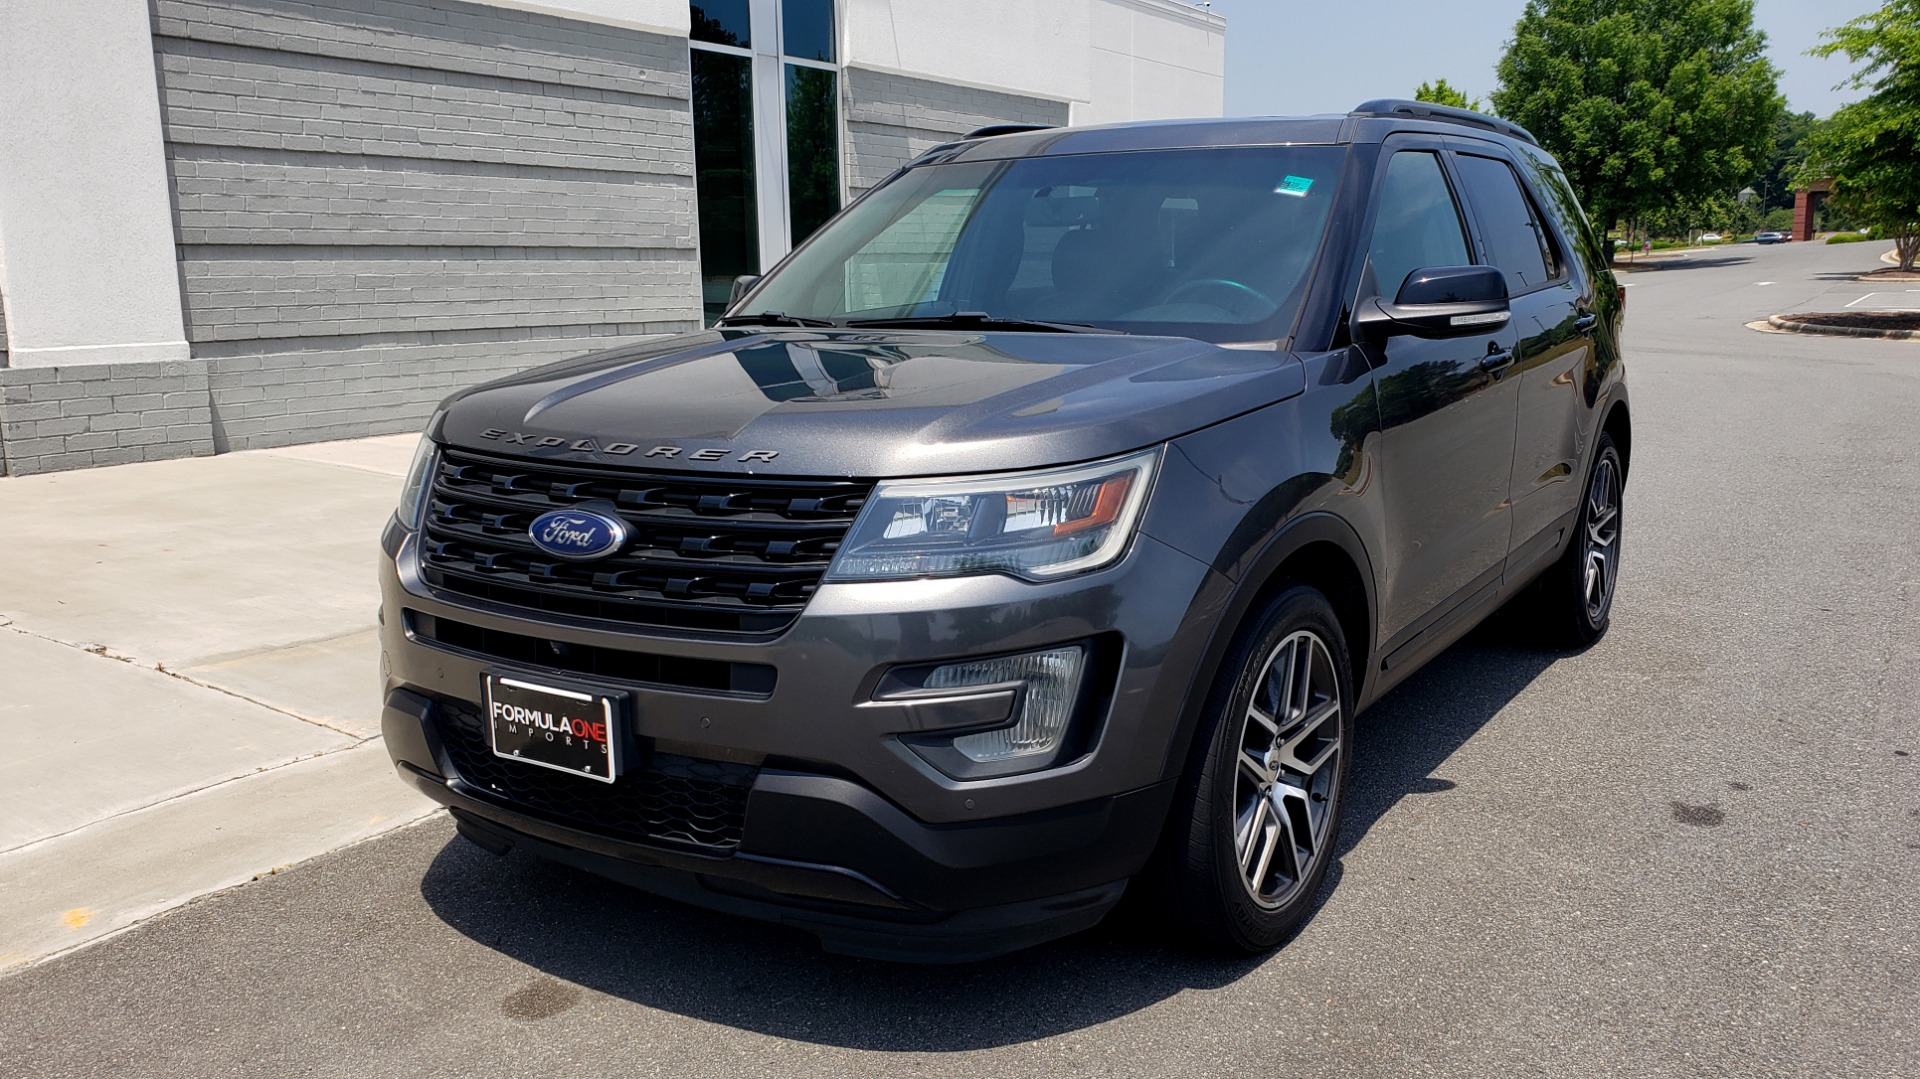 Used 2016 Ford EXPLORER SPORT 4WD / 3.5L ECOBOOST / 6-SPD AUTO / BSM / REARVIEW for sale Sold at Formula Imports in Charlotte NC 28227 3